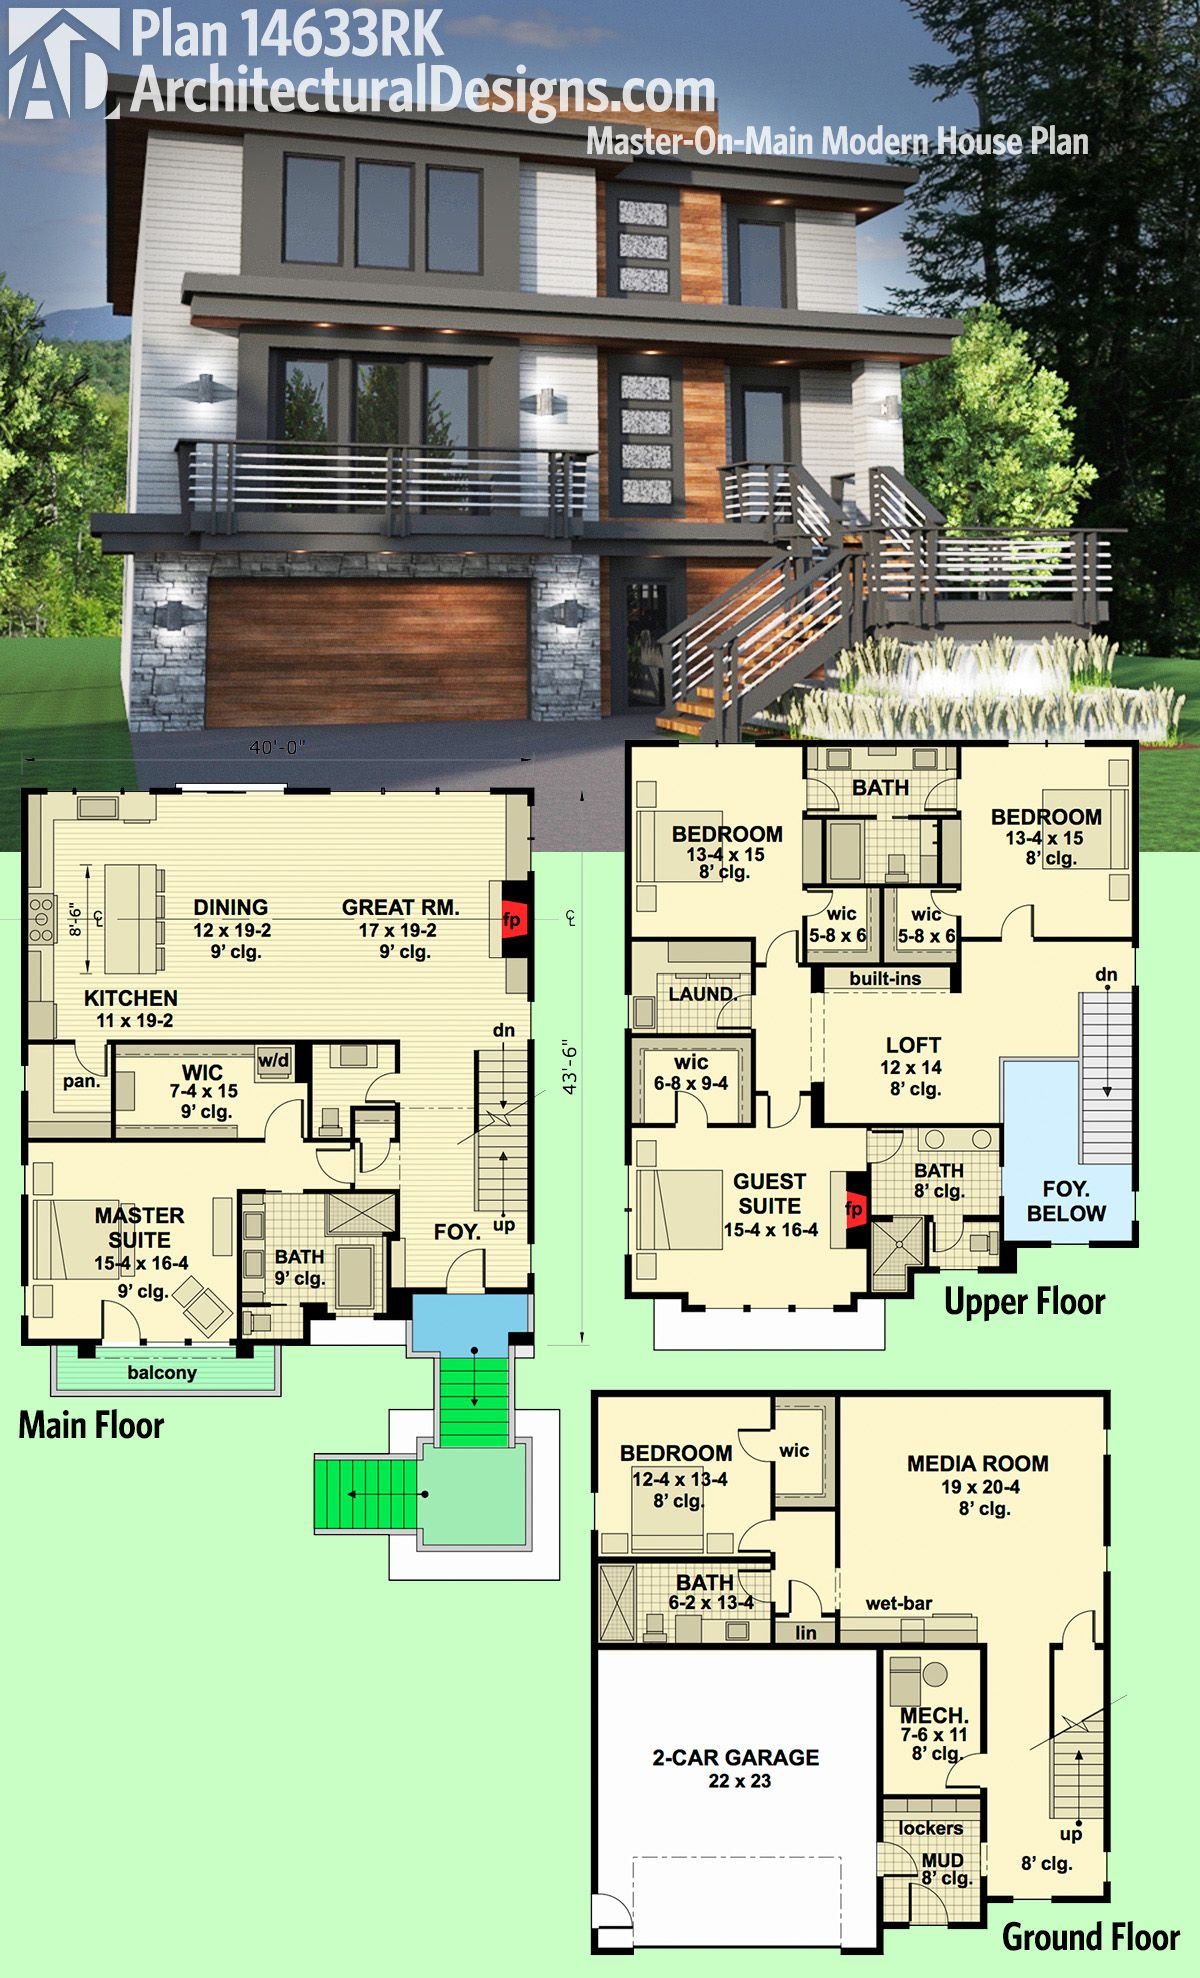 Contemporary Modern Home Plans plan 14633rk: master-on-main modern house plan | modern house